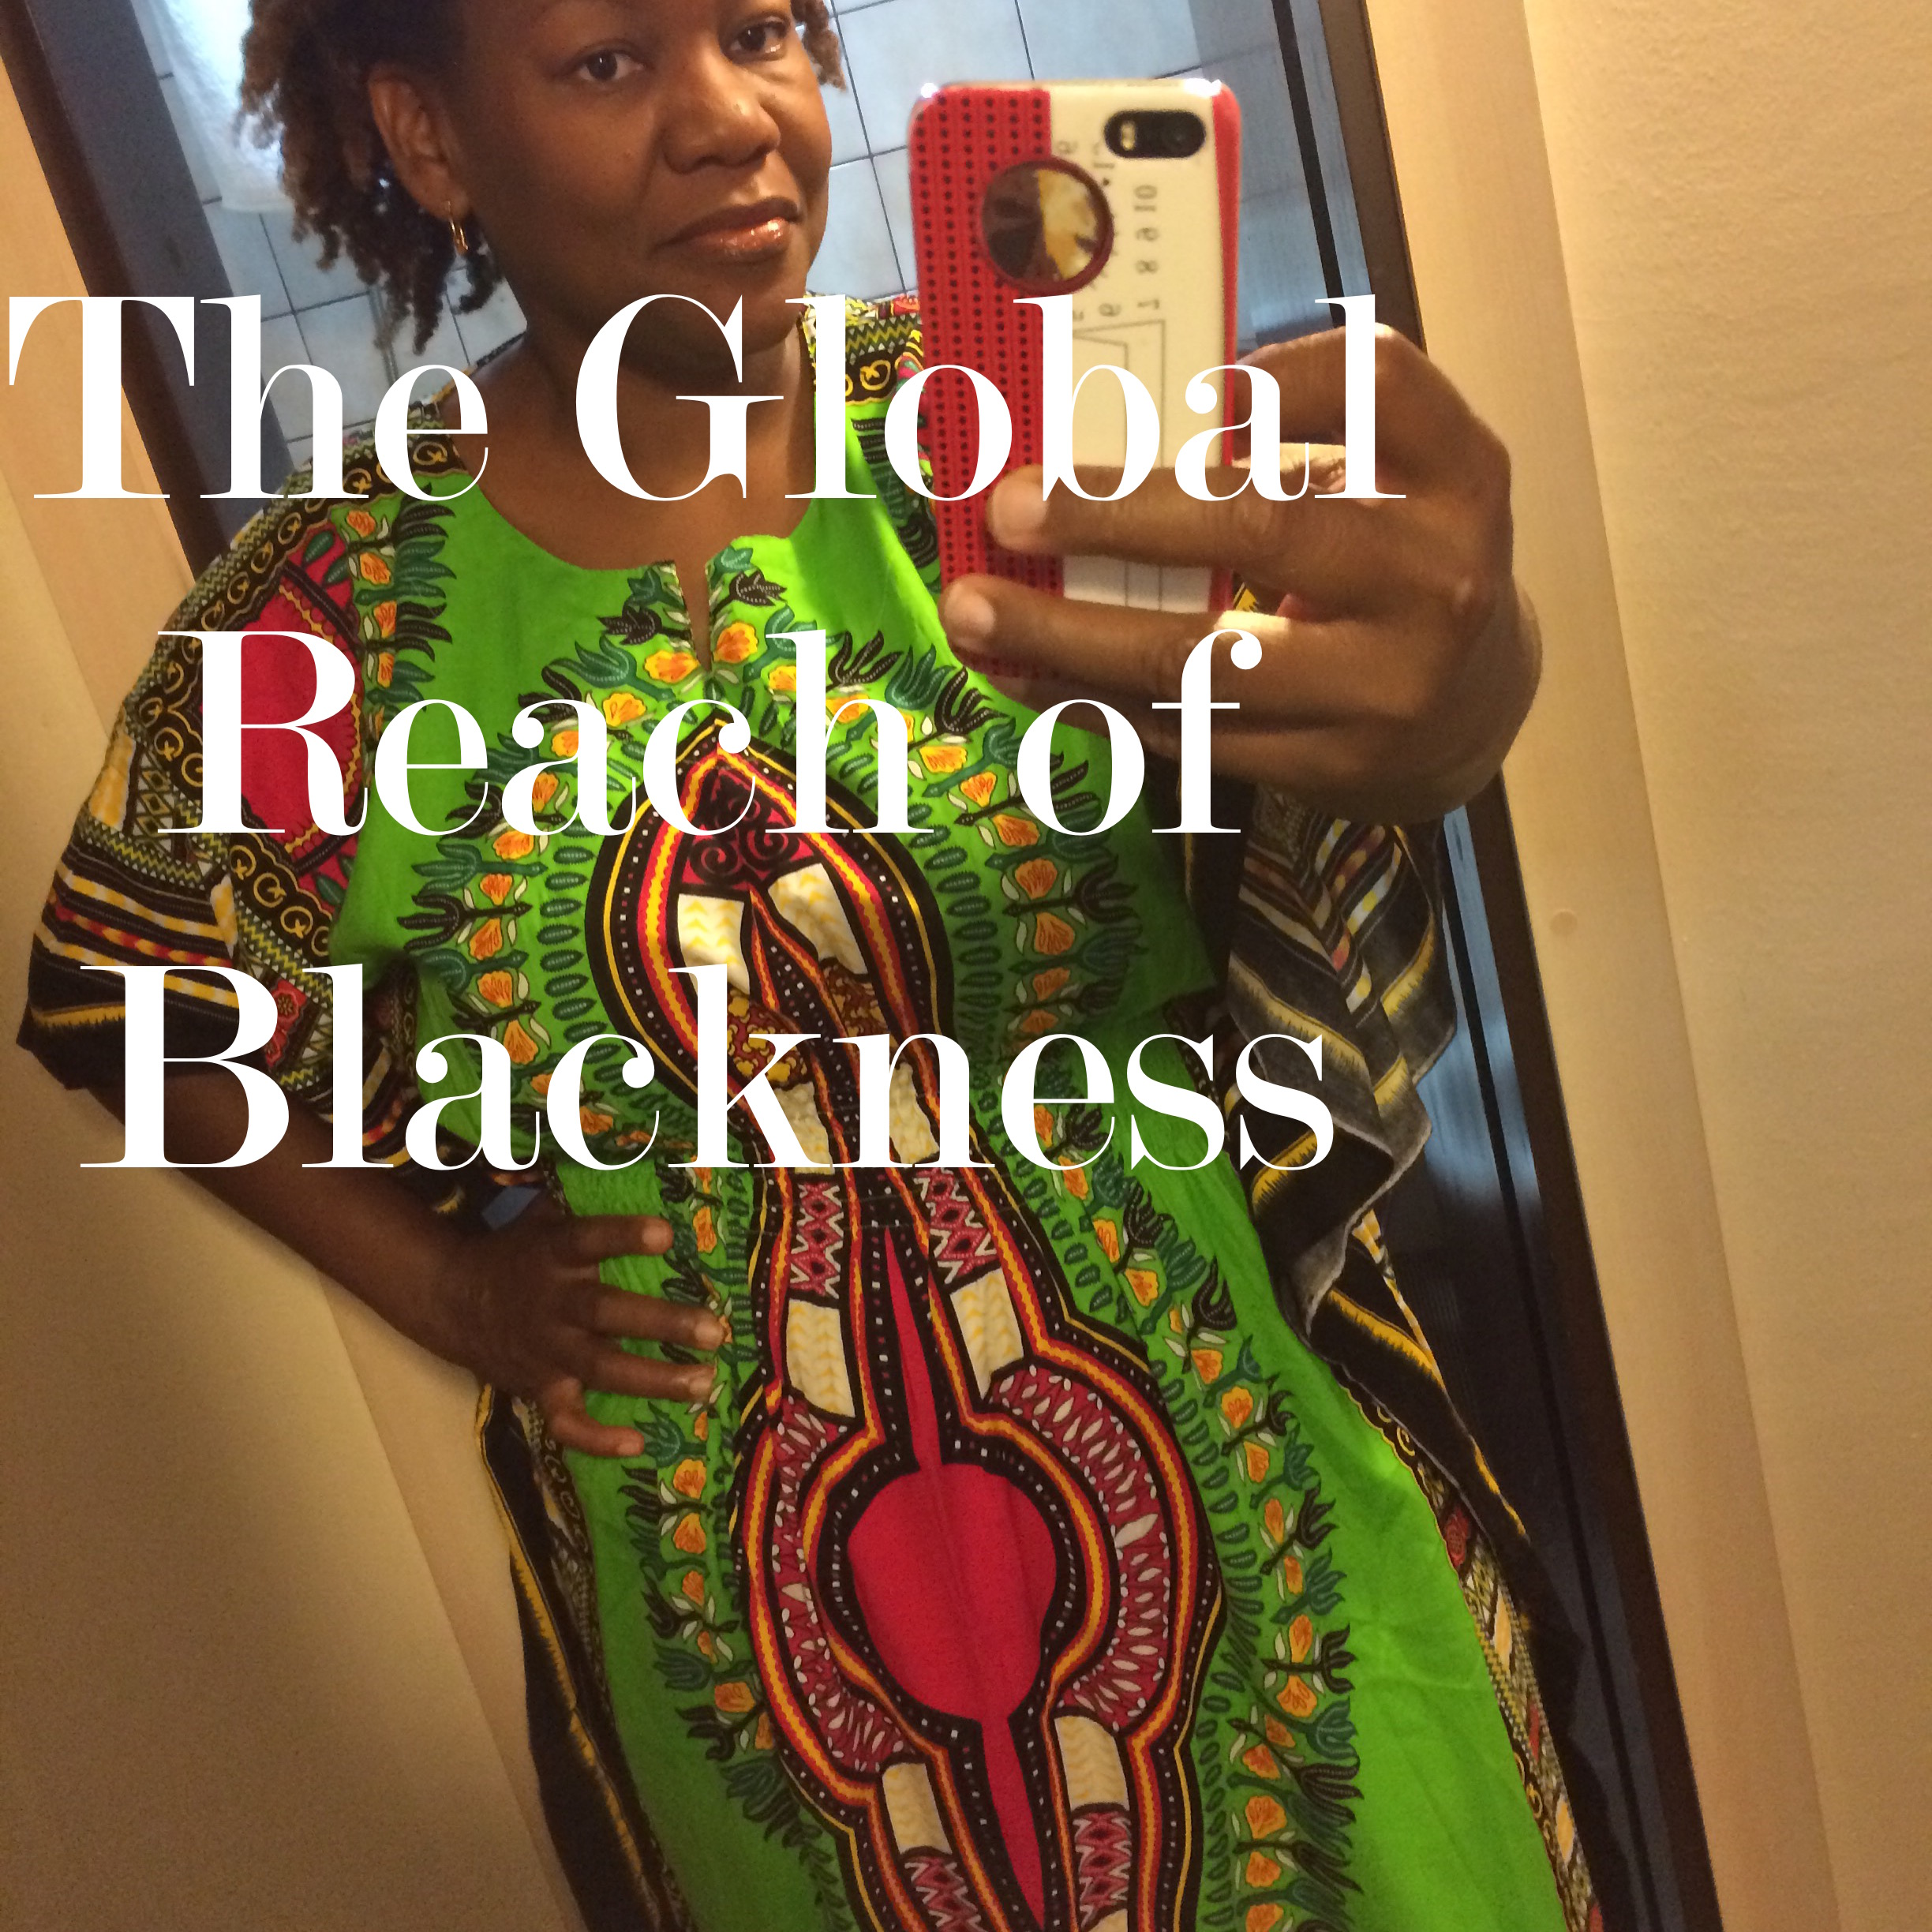 The Global Reach of Blackness